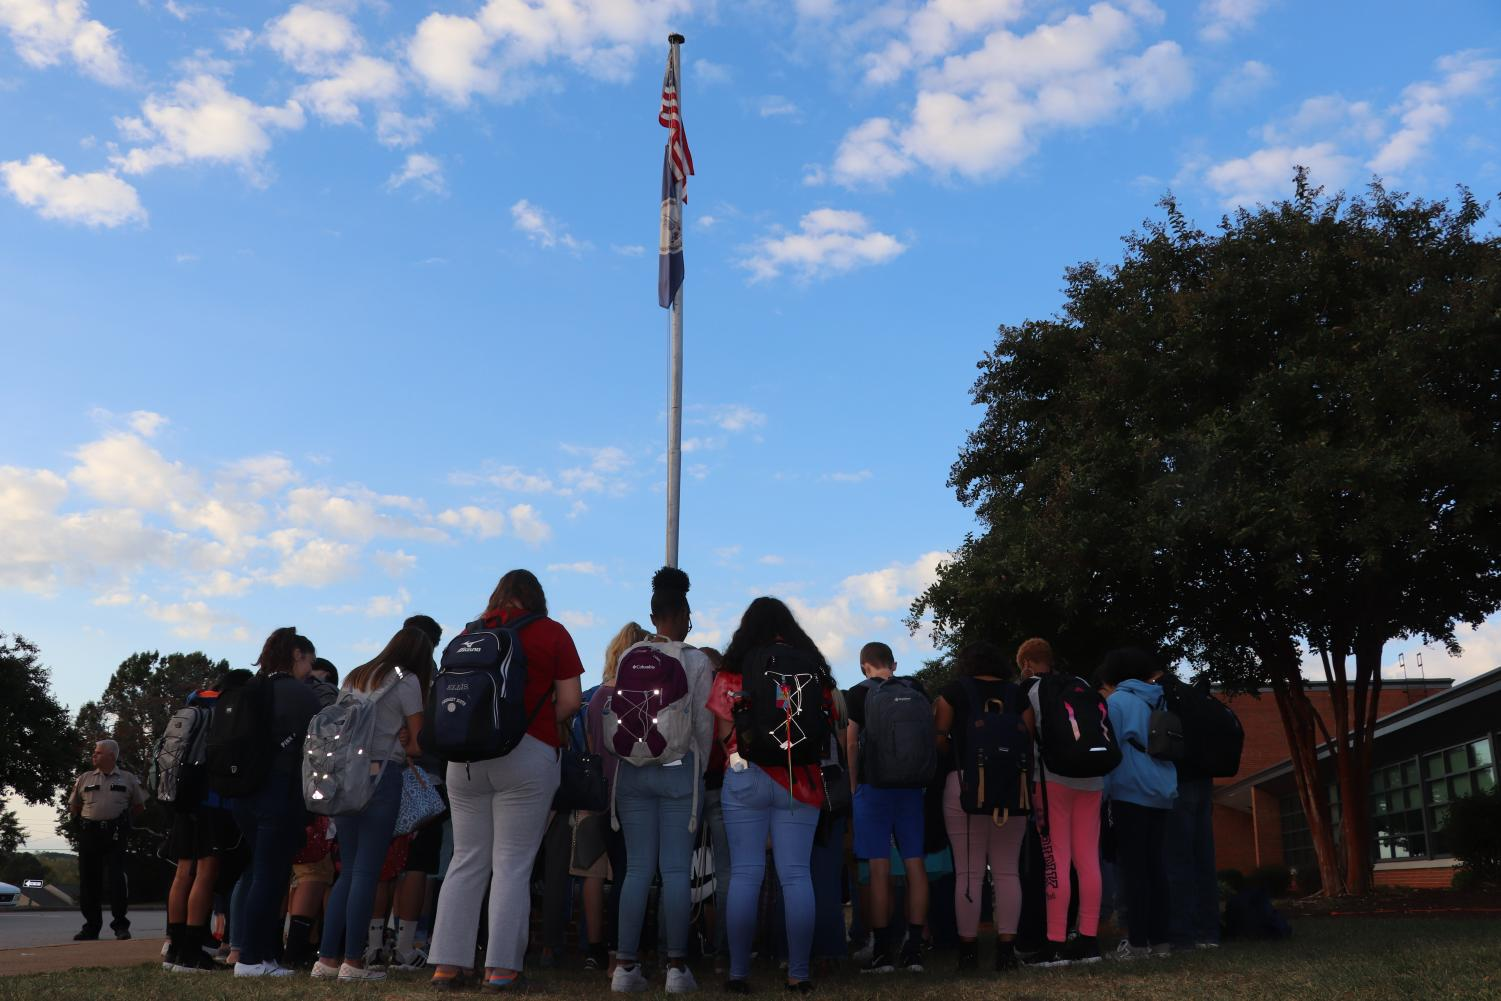 Students gather in prayer around the school's flagpole the morning of Wednesday, September 25.